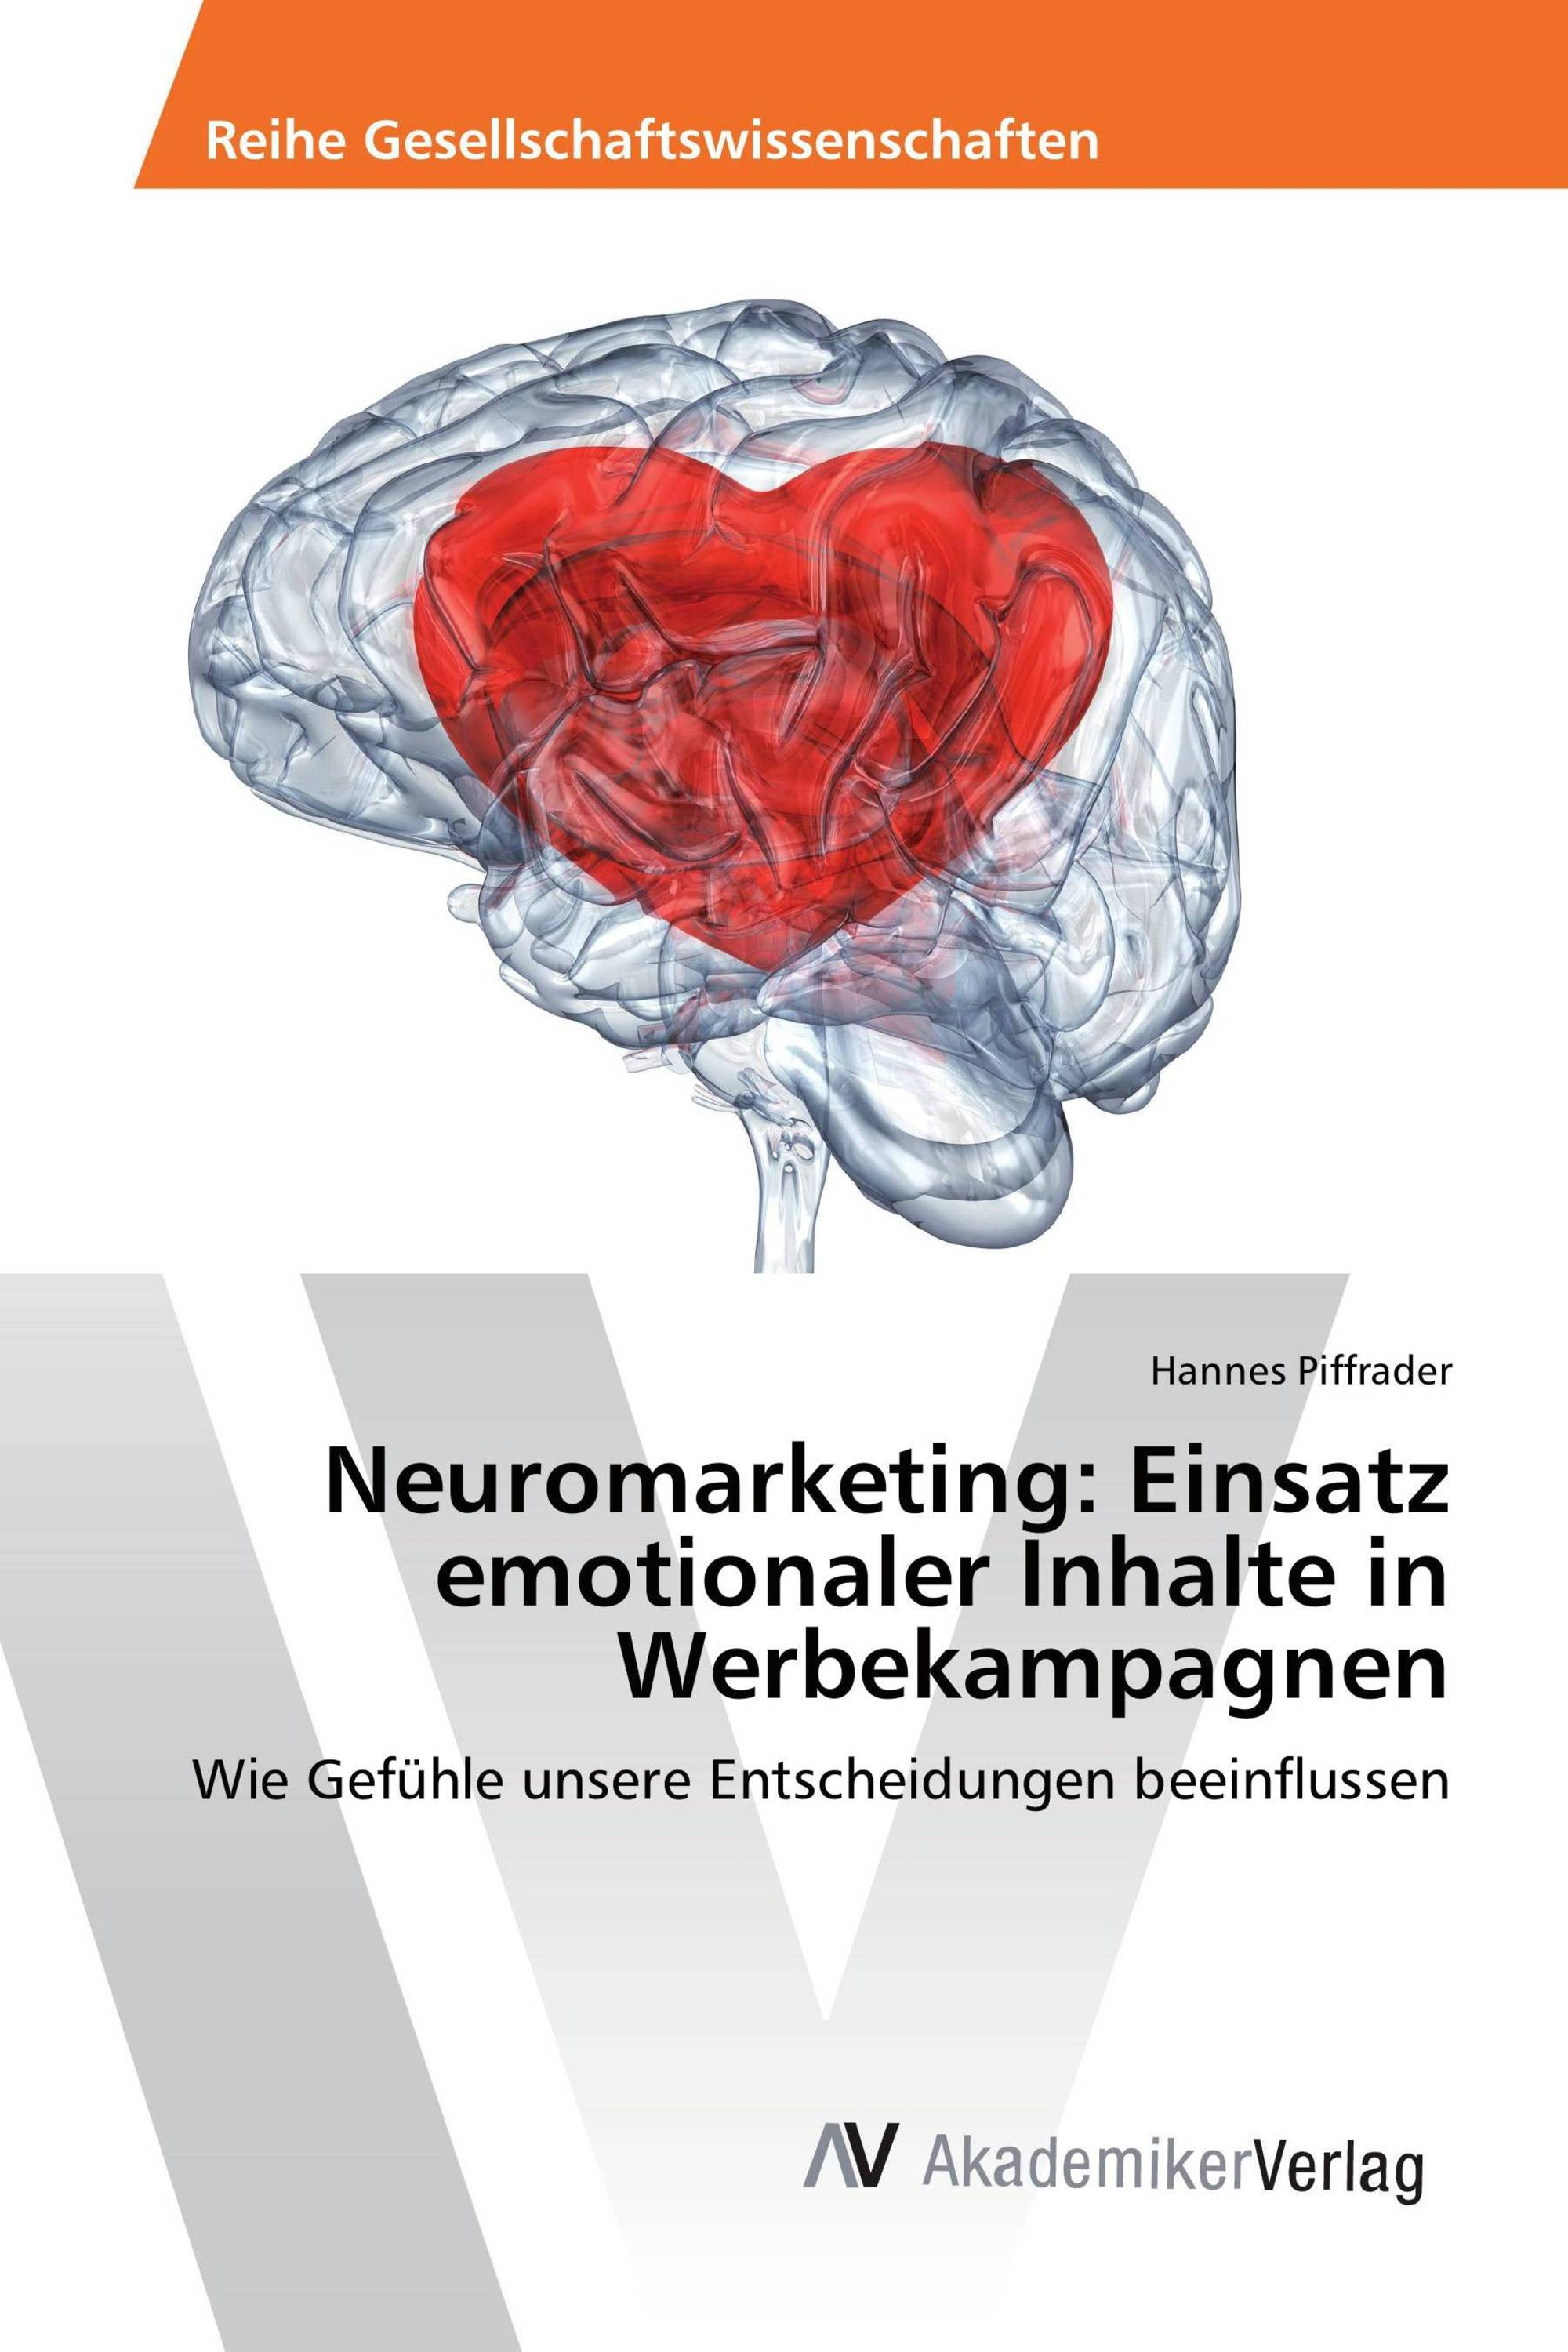 Neuromarketing: Einsatz emotionaler Inhalte in Werbekampagnen